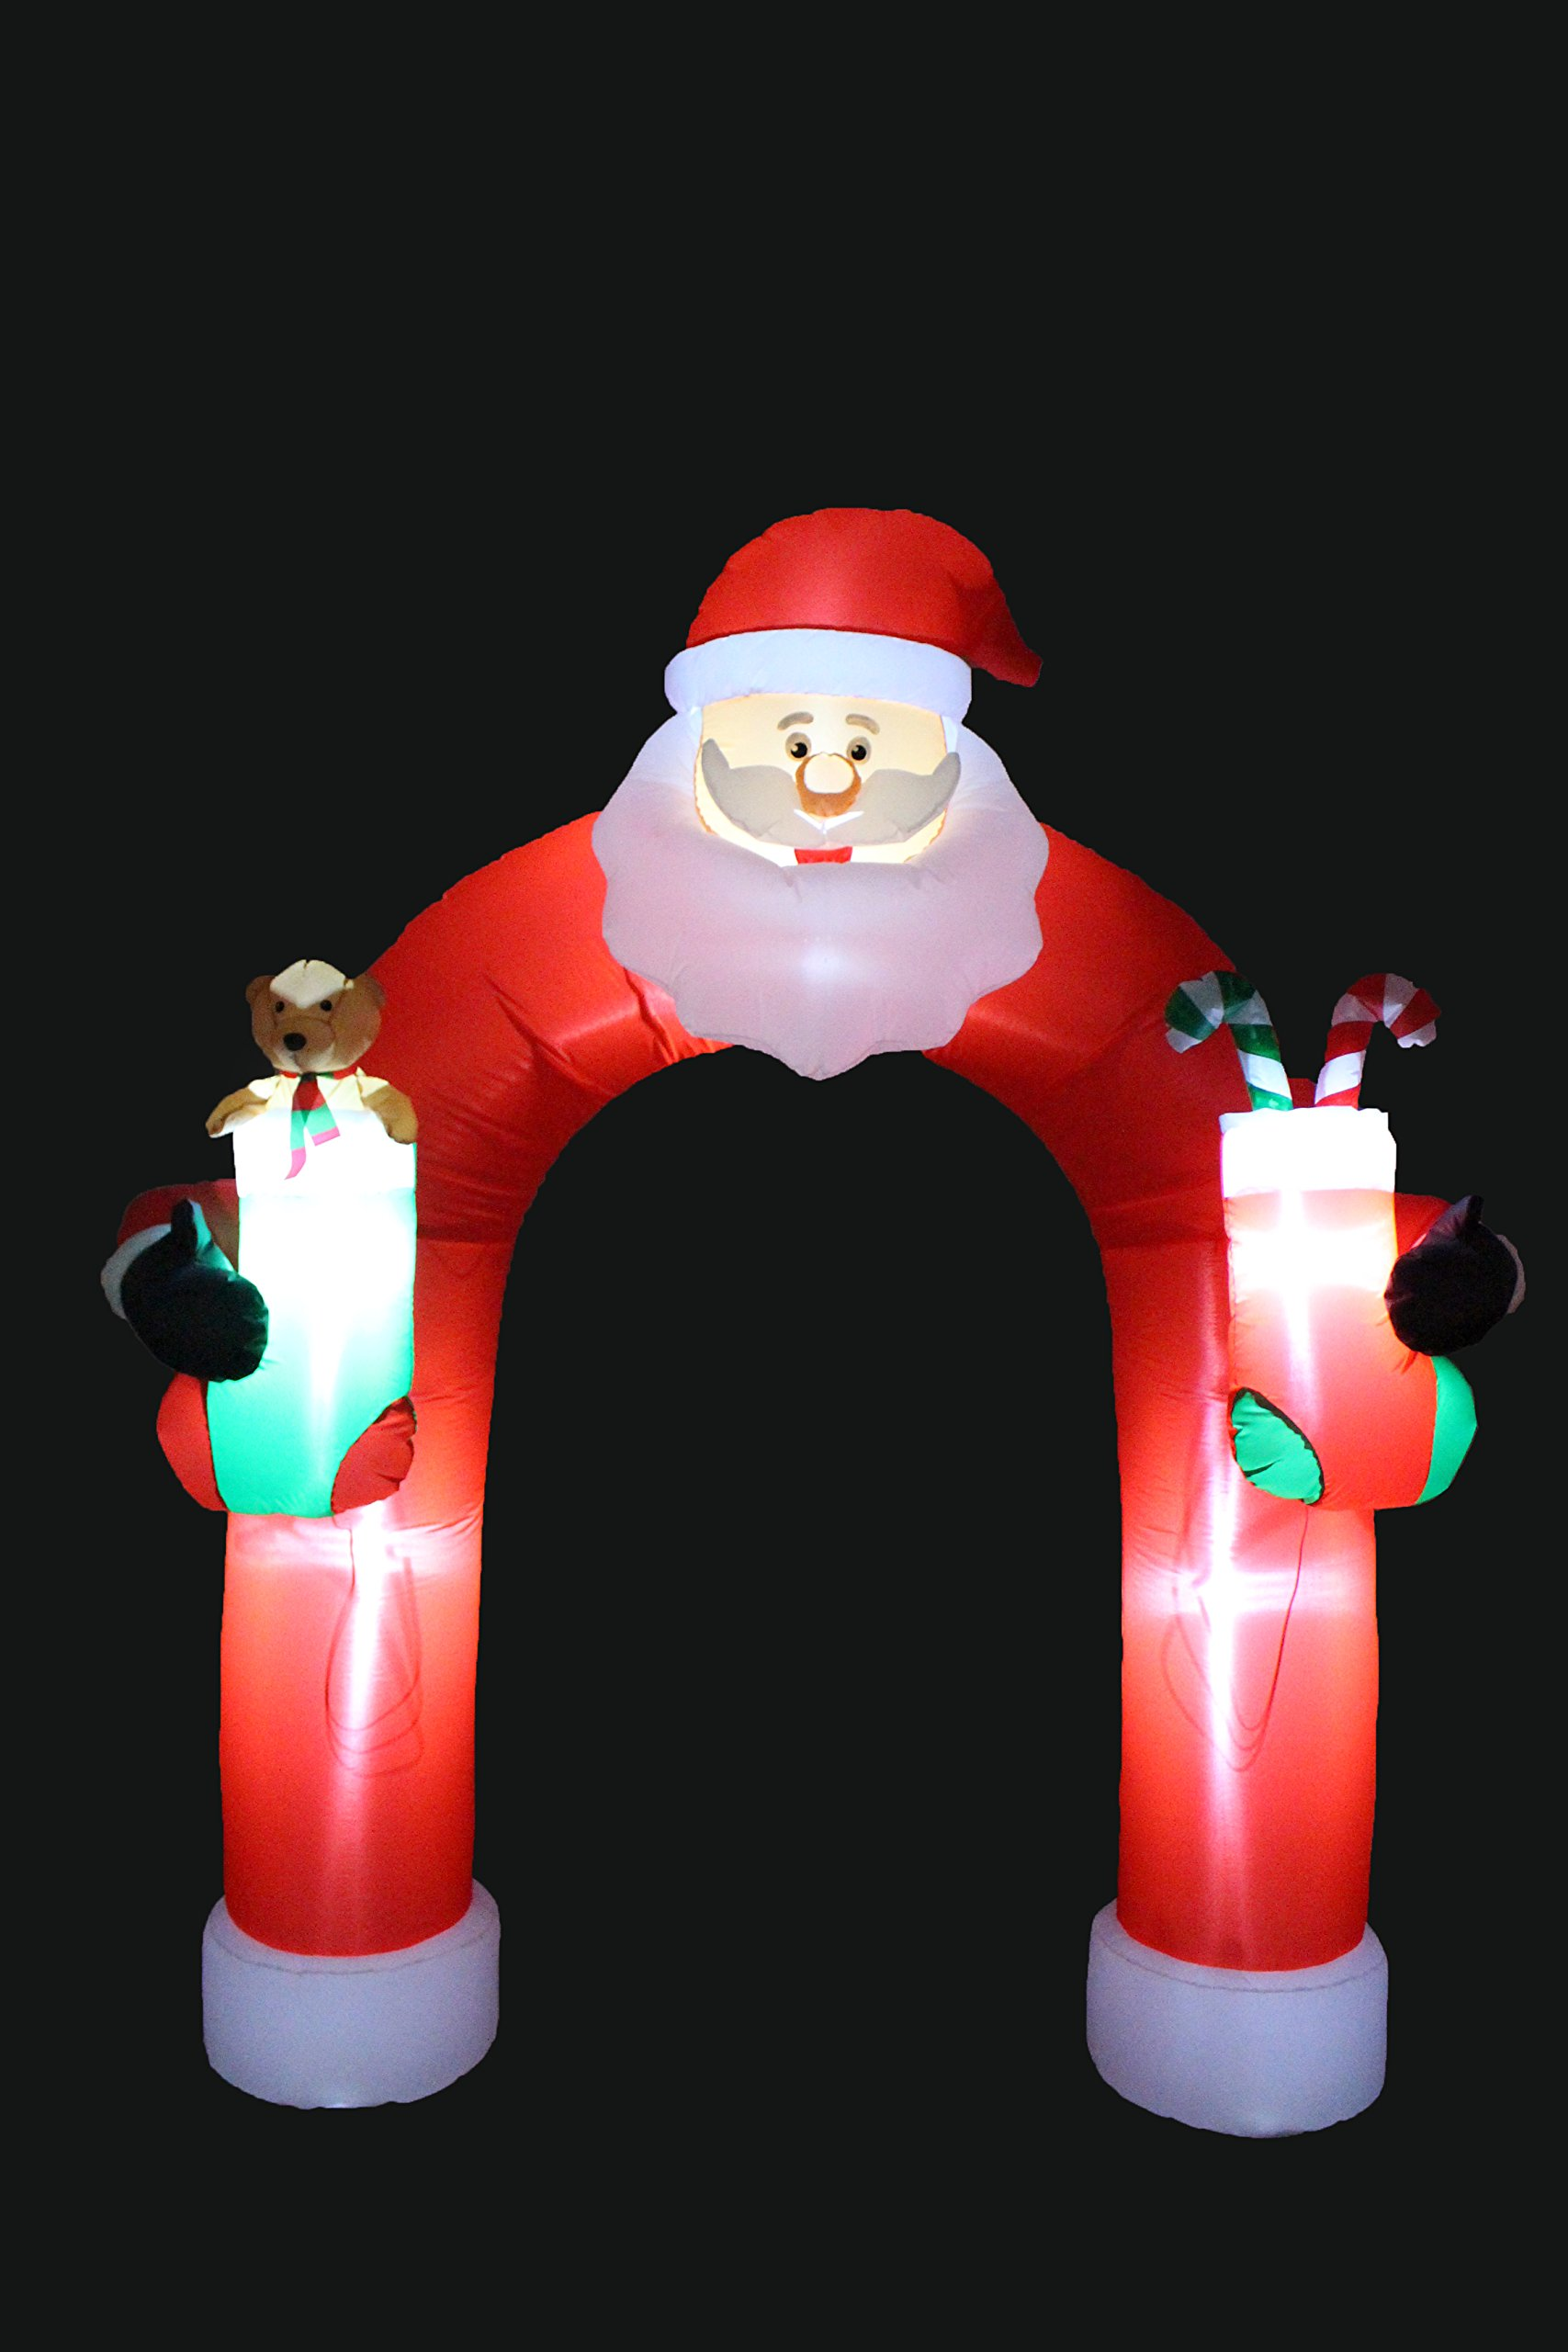 9 Foot Tall Lighted Christmas Inflatable Santa Claus Archway Arch with Teddy Bear Sugar Cane Cute Indoor Outdoor Garden Yard Party Prop Decoration by Blossom (Image #4)